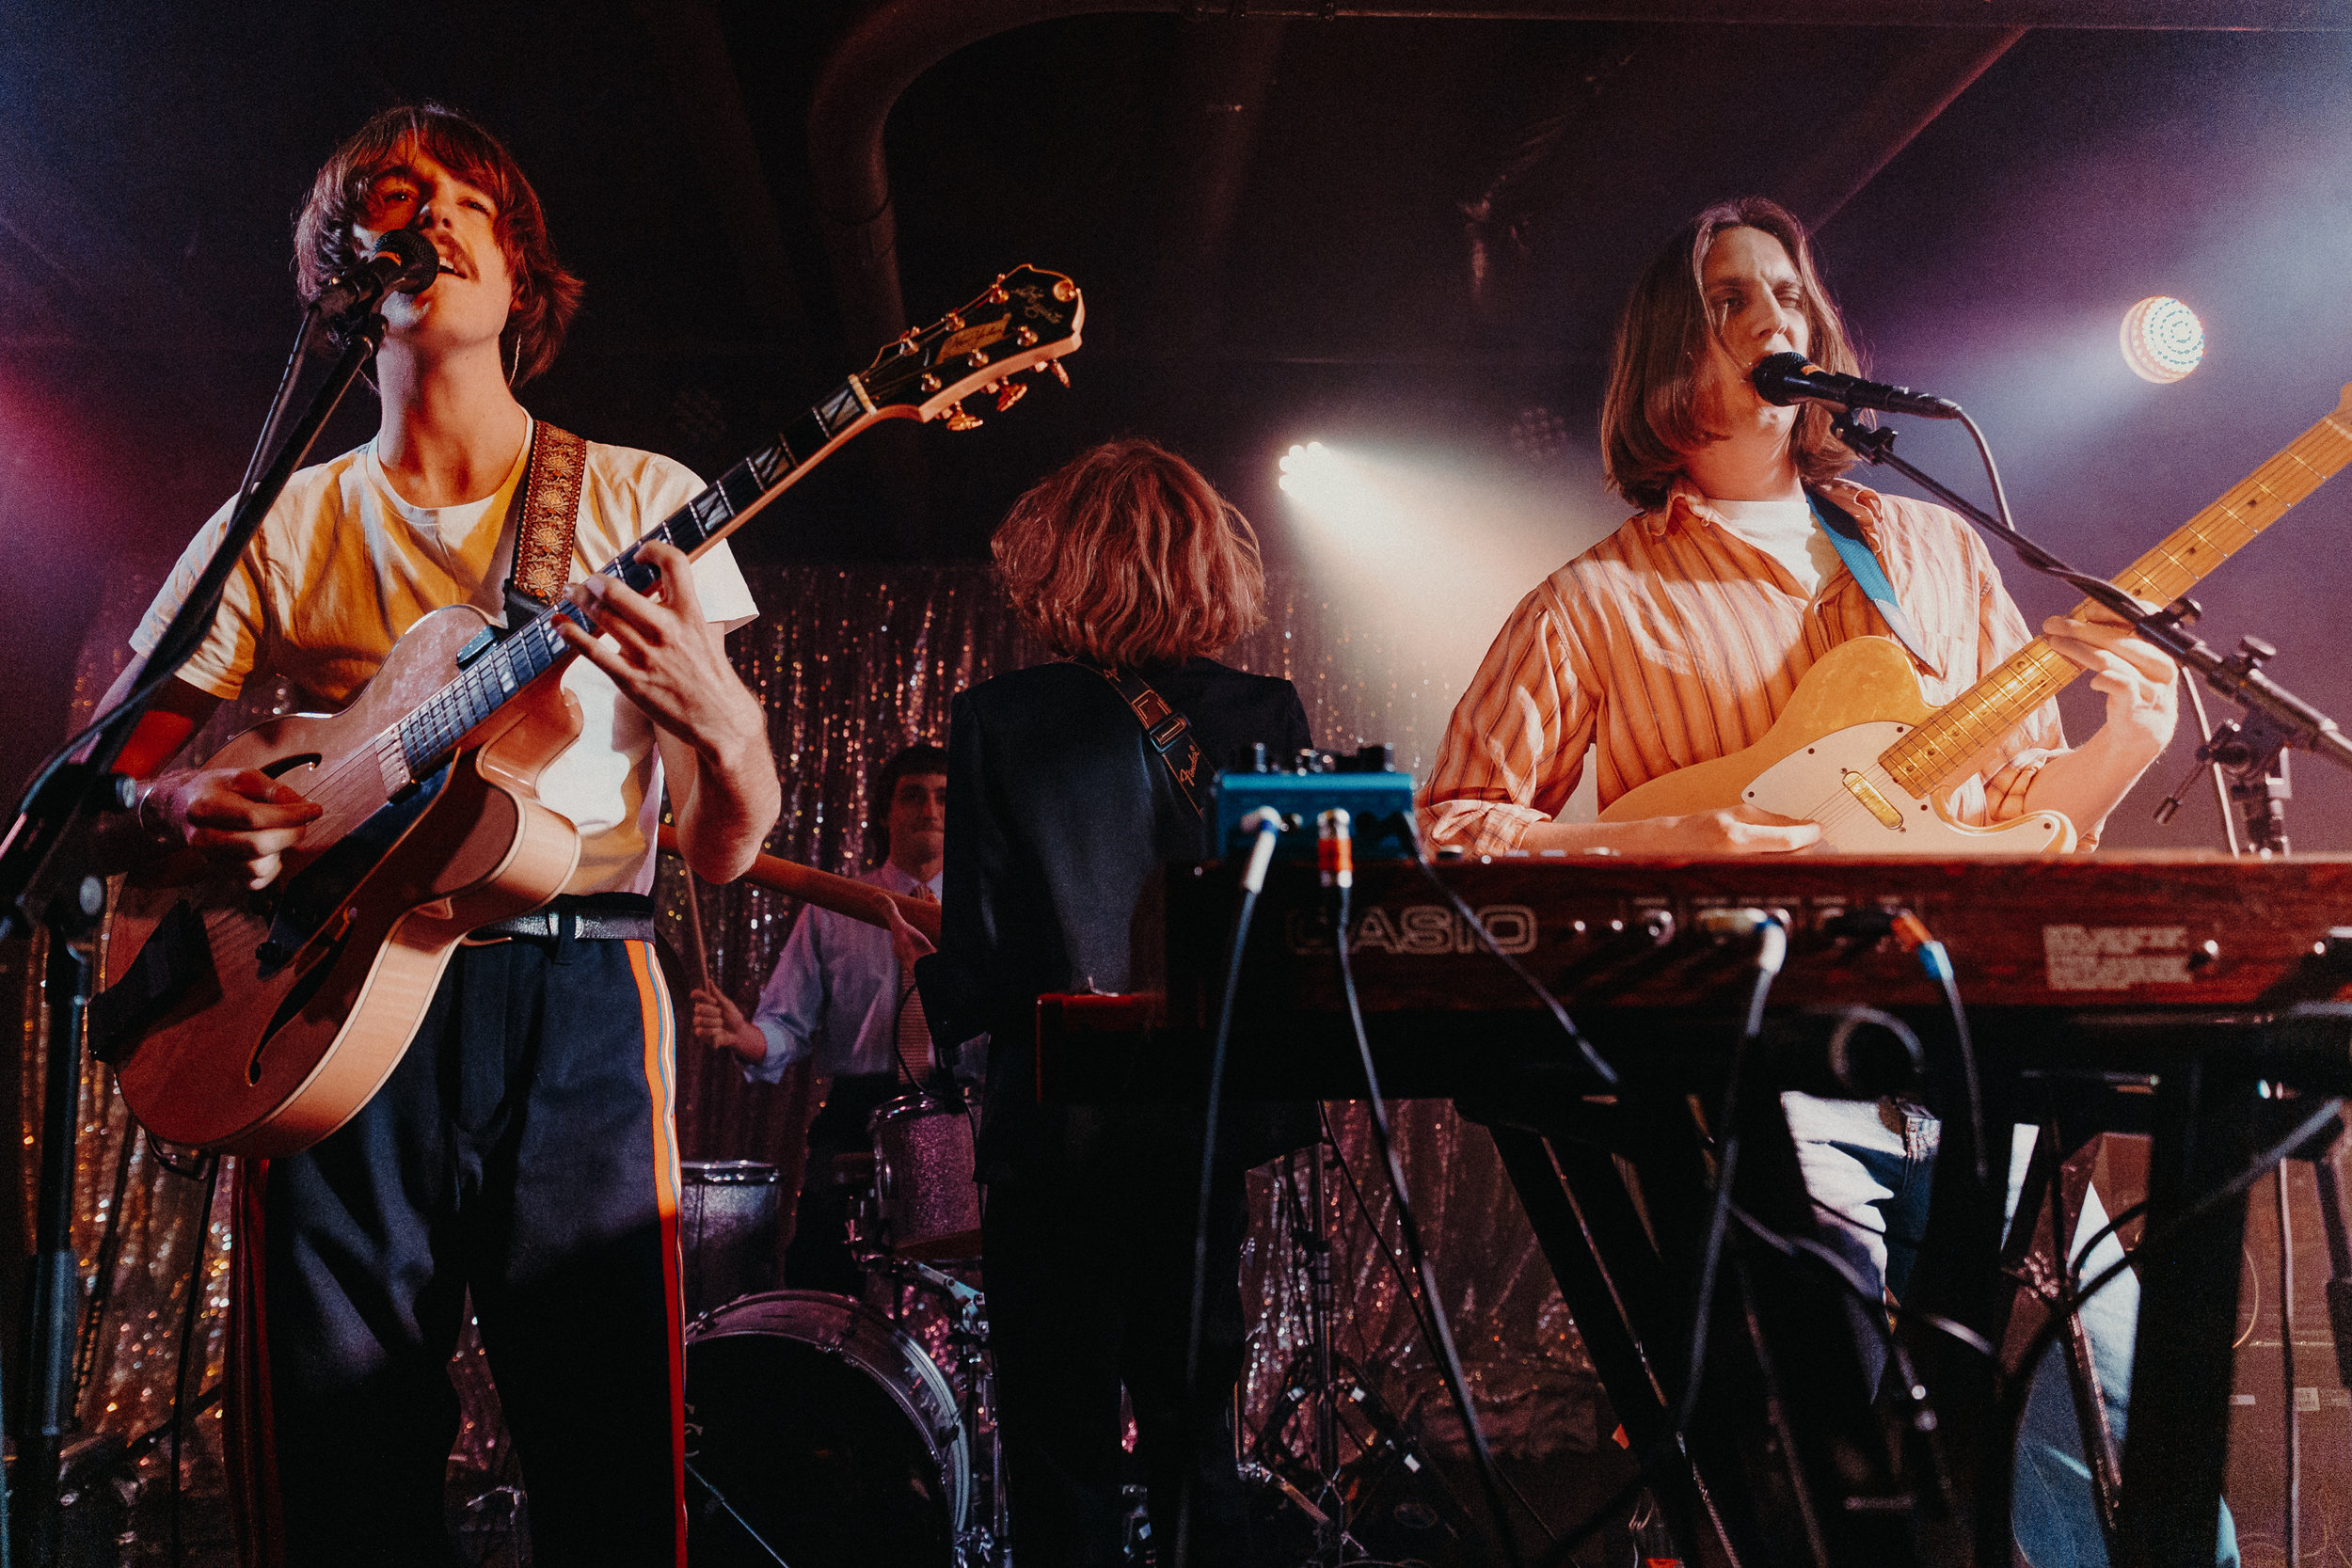 Parcels at U Street Music Hall (Photo by Mauricio Castro)